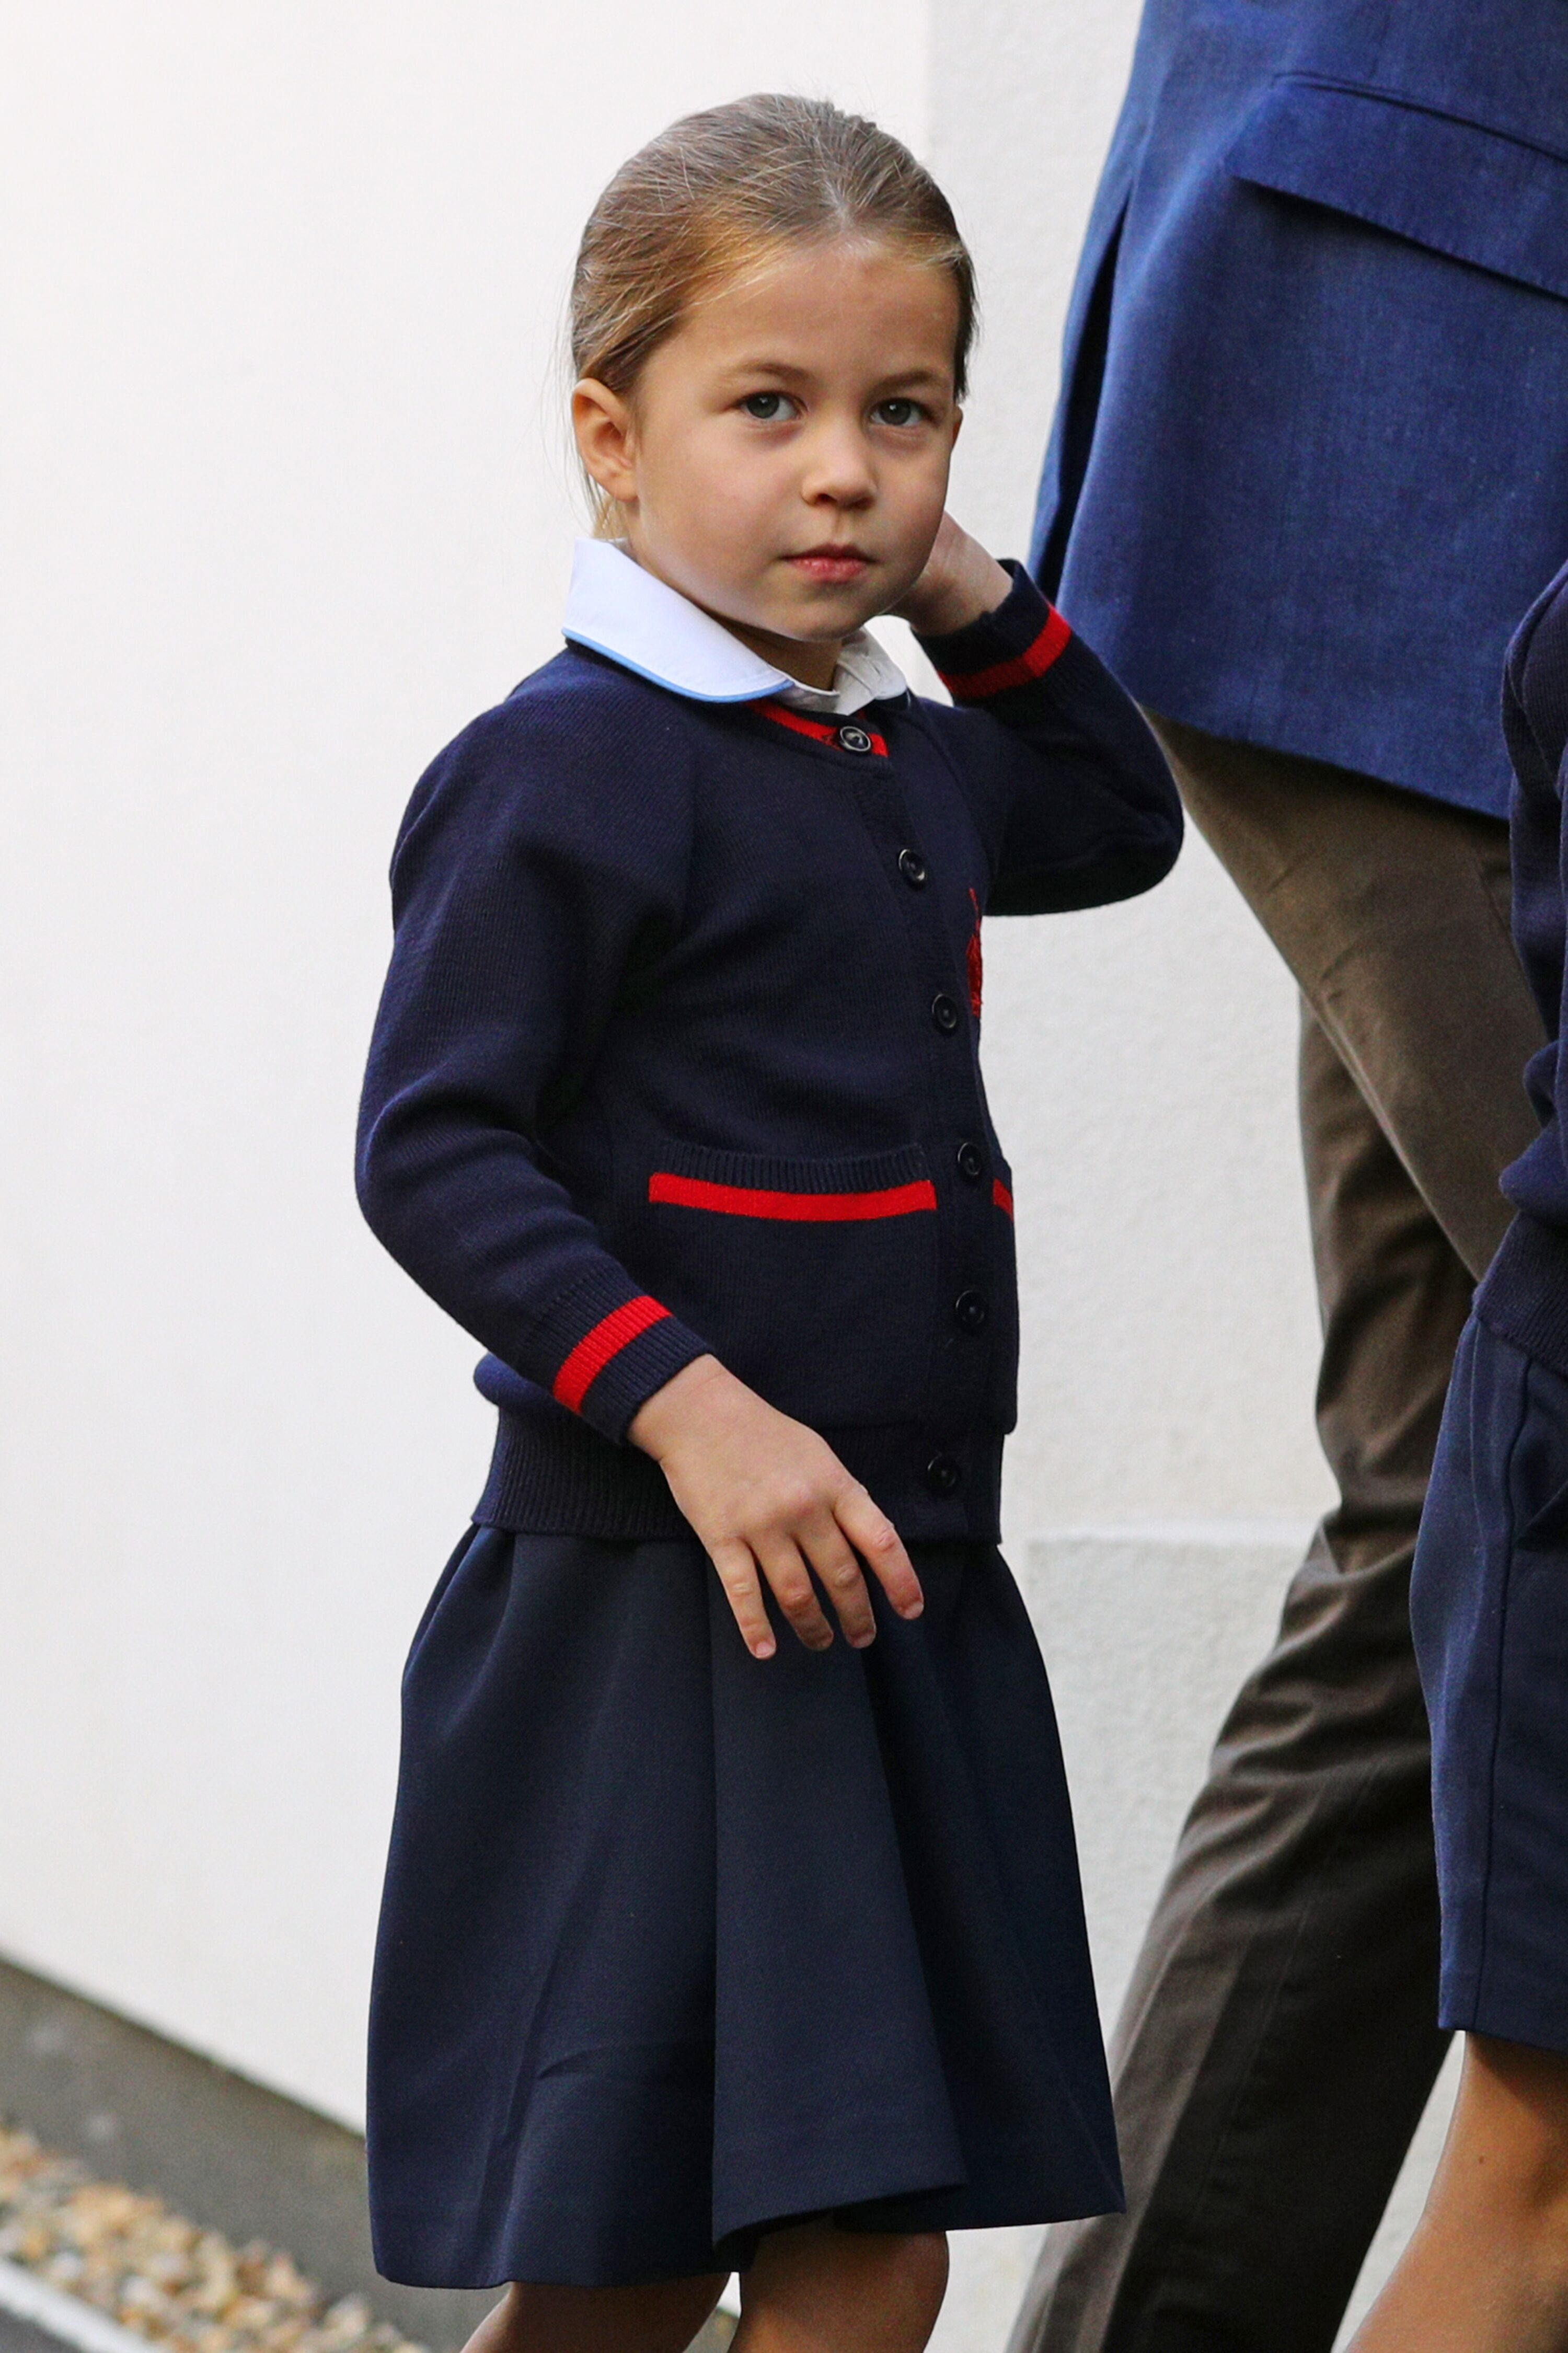 rincess Charlotte arrives for her first day of school at Thomas's Battersea in London on September 5, 2019 in London, England. | Photo: Getty Images